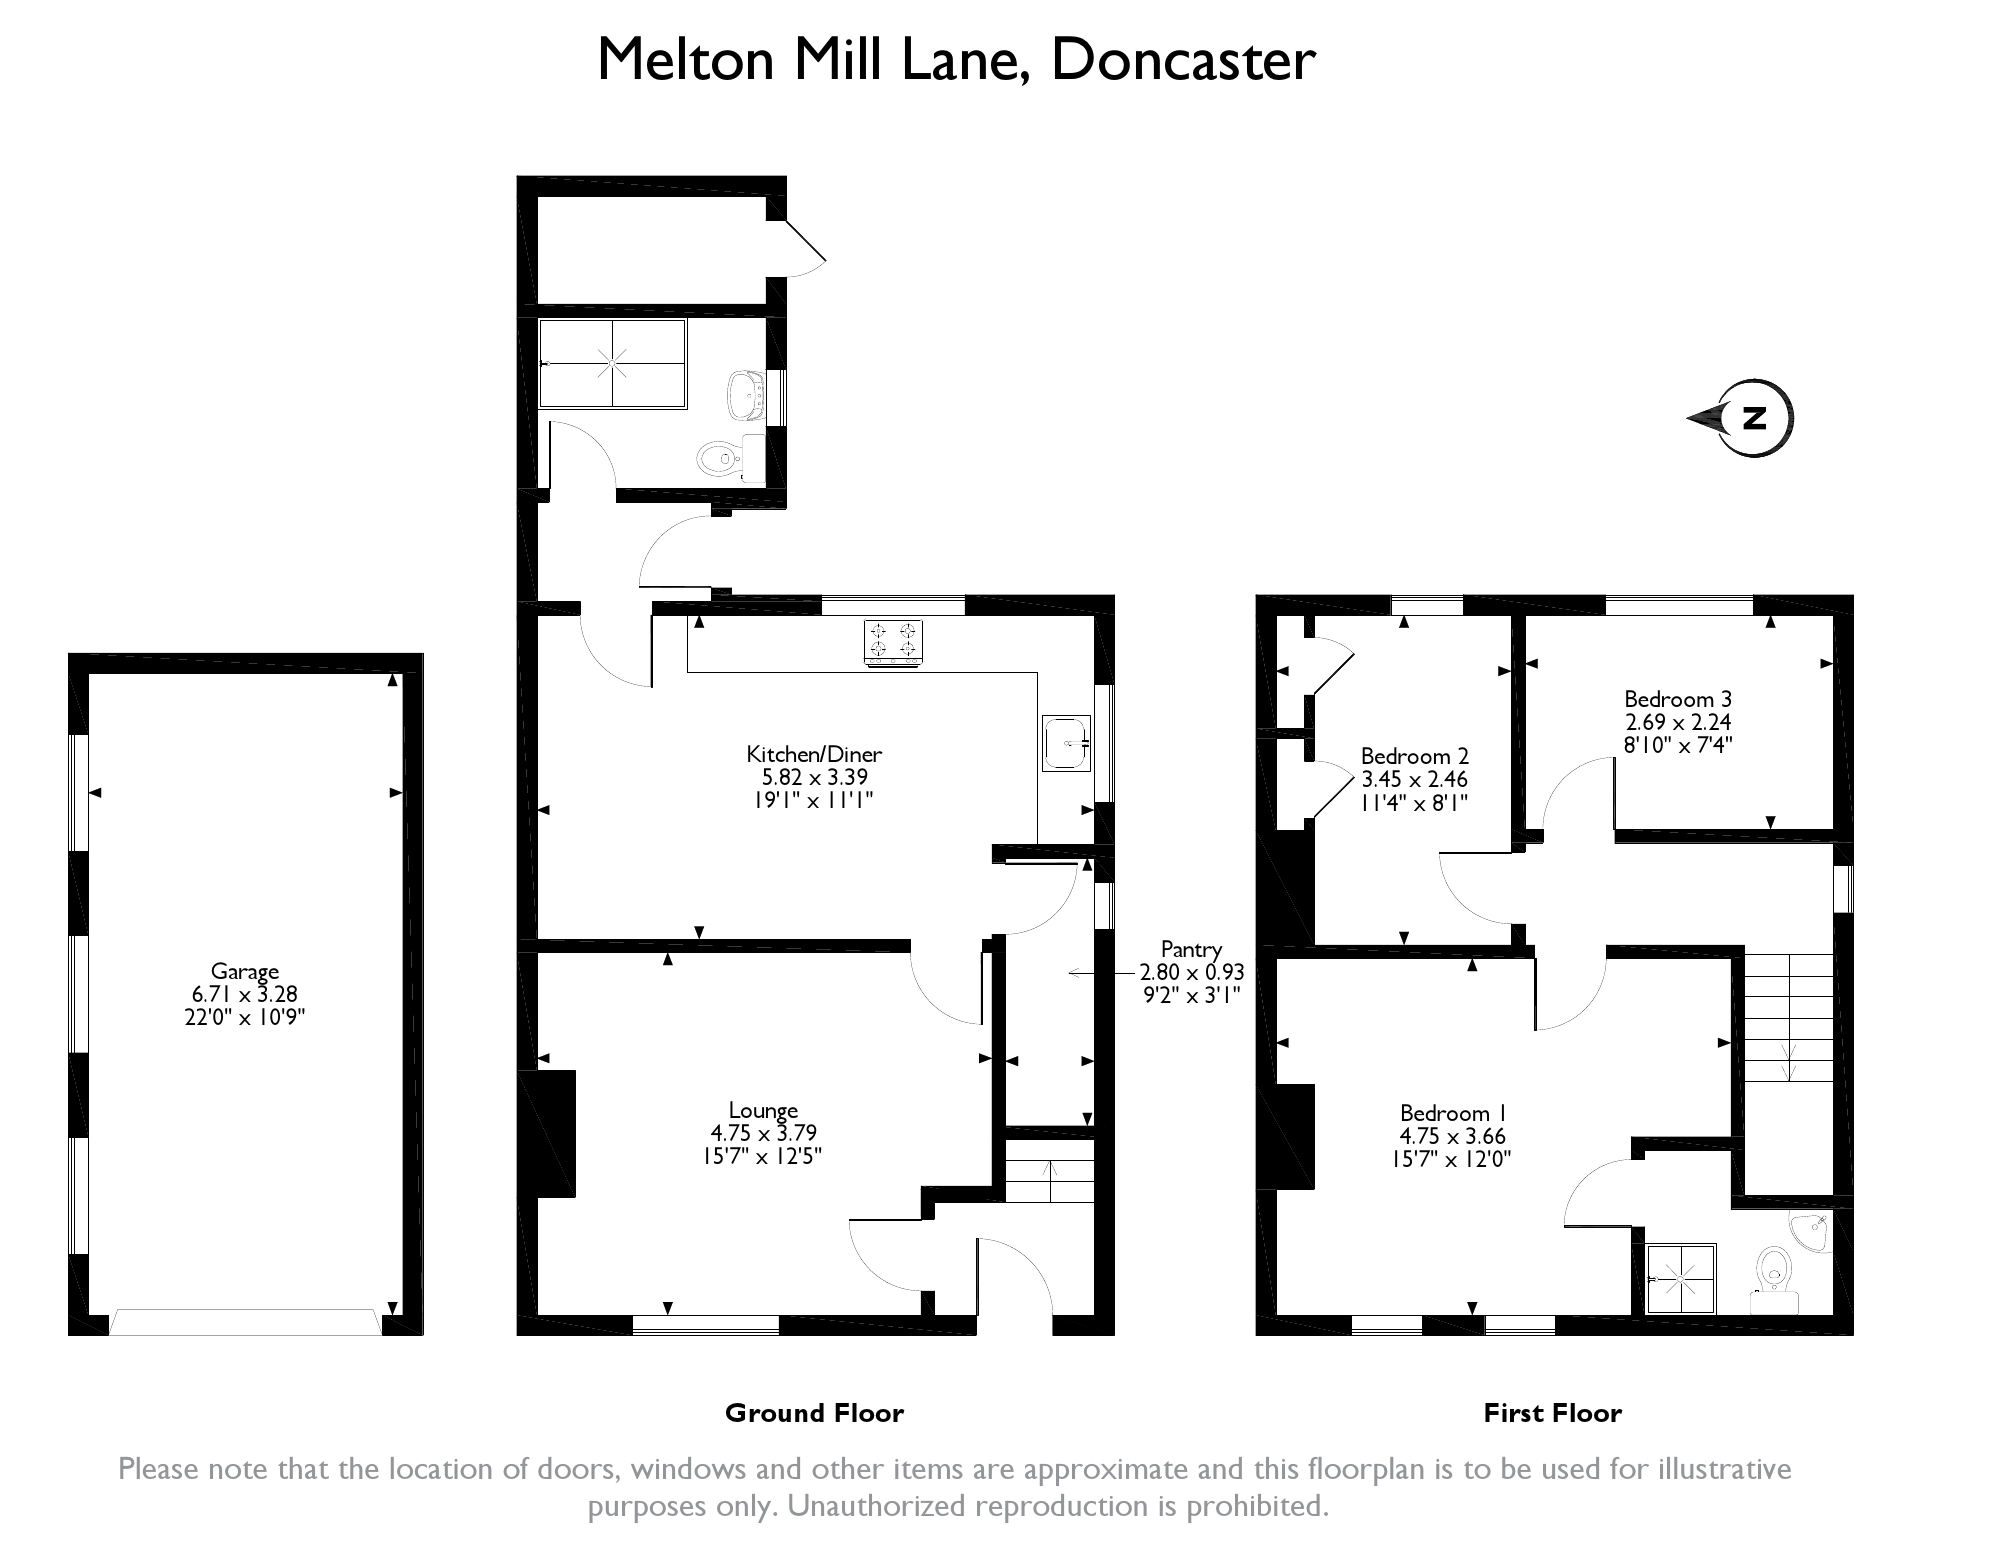 3 Bedrooms Semi-detached house for sale in Melton Mill Lane, High Melton, Doncaster DN5